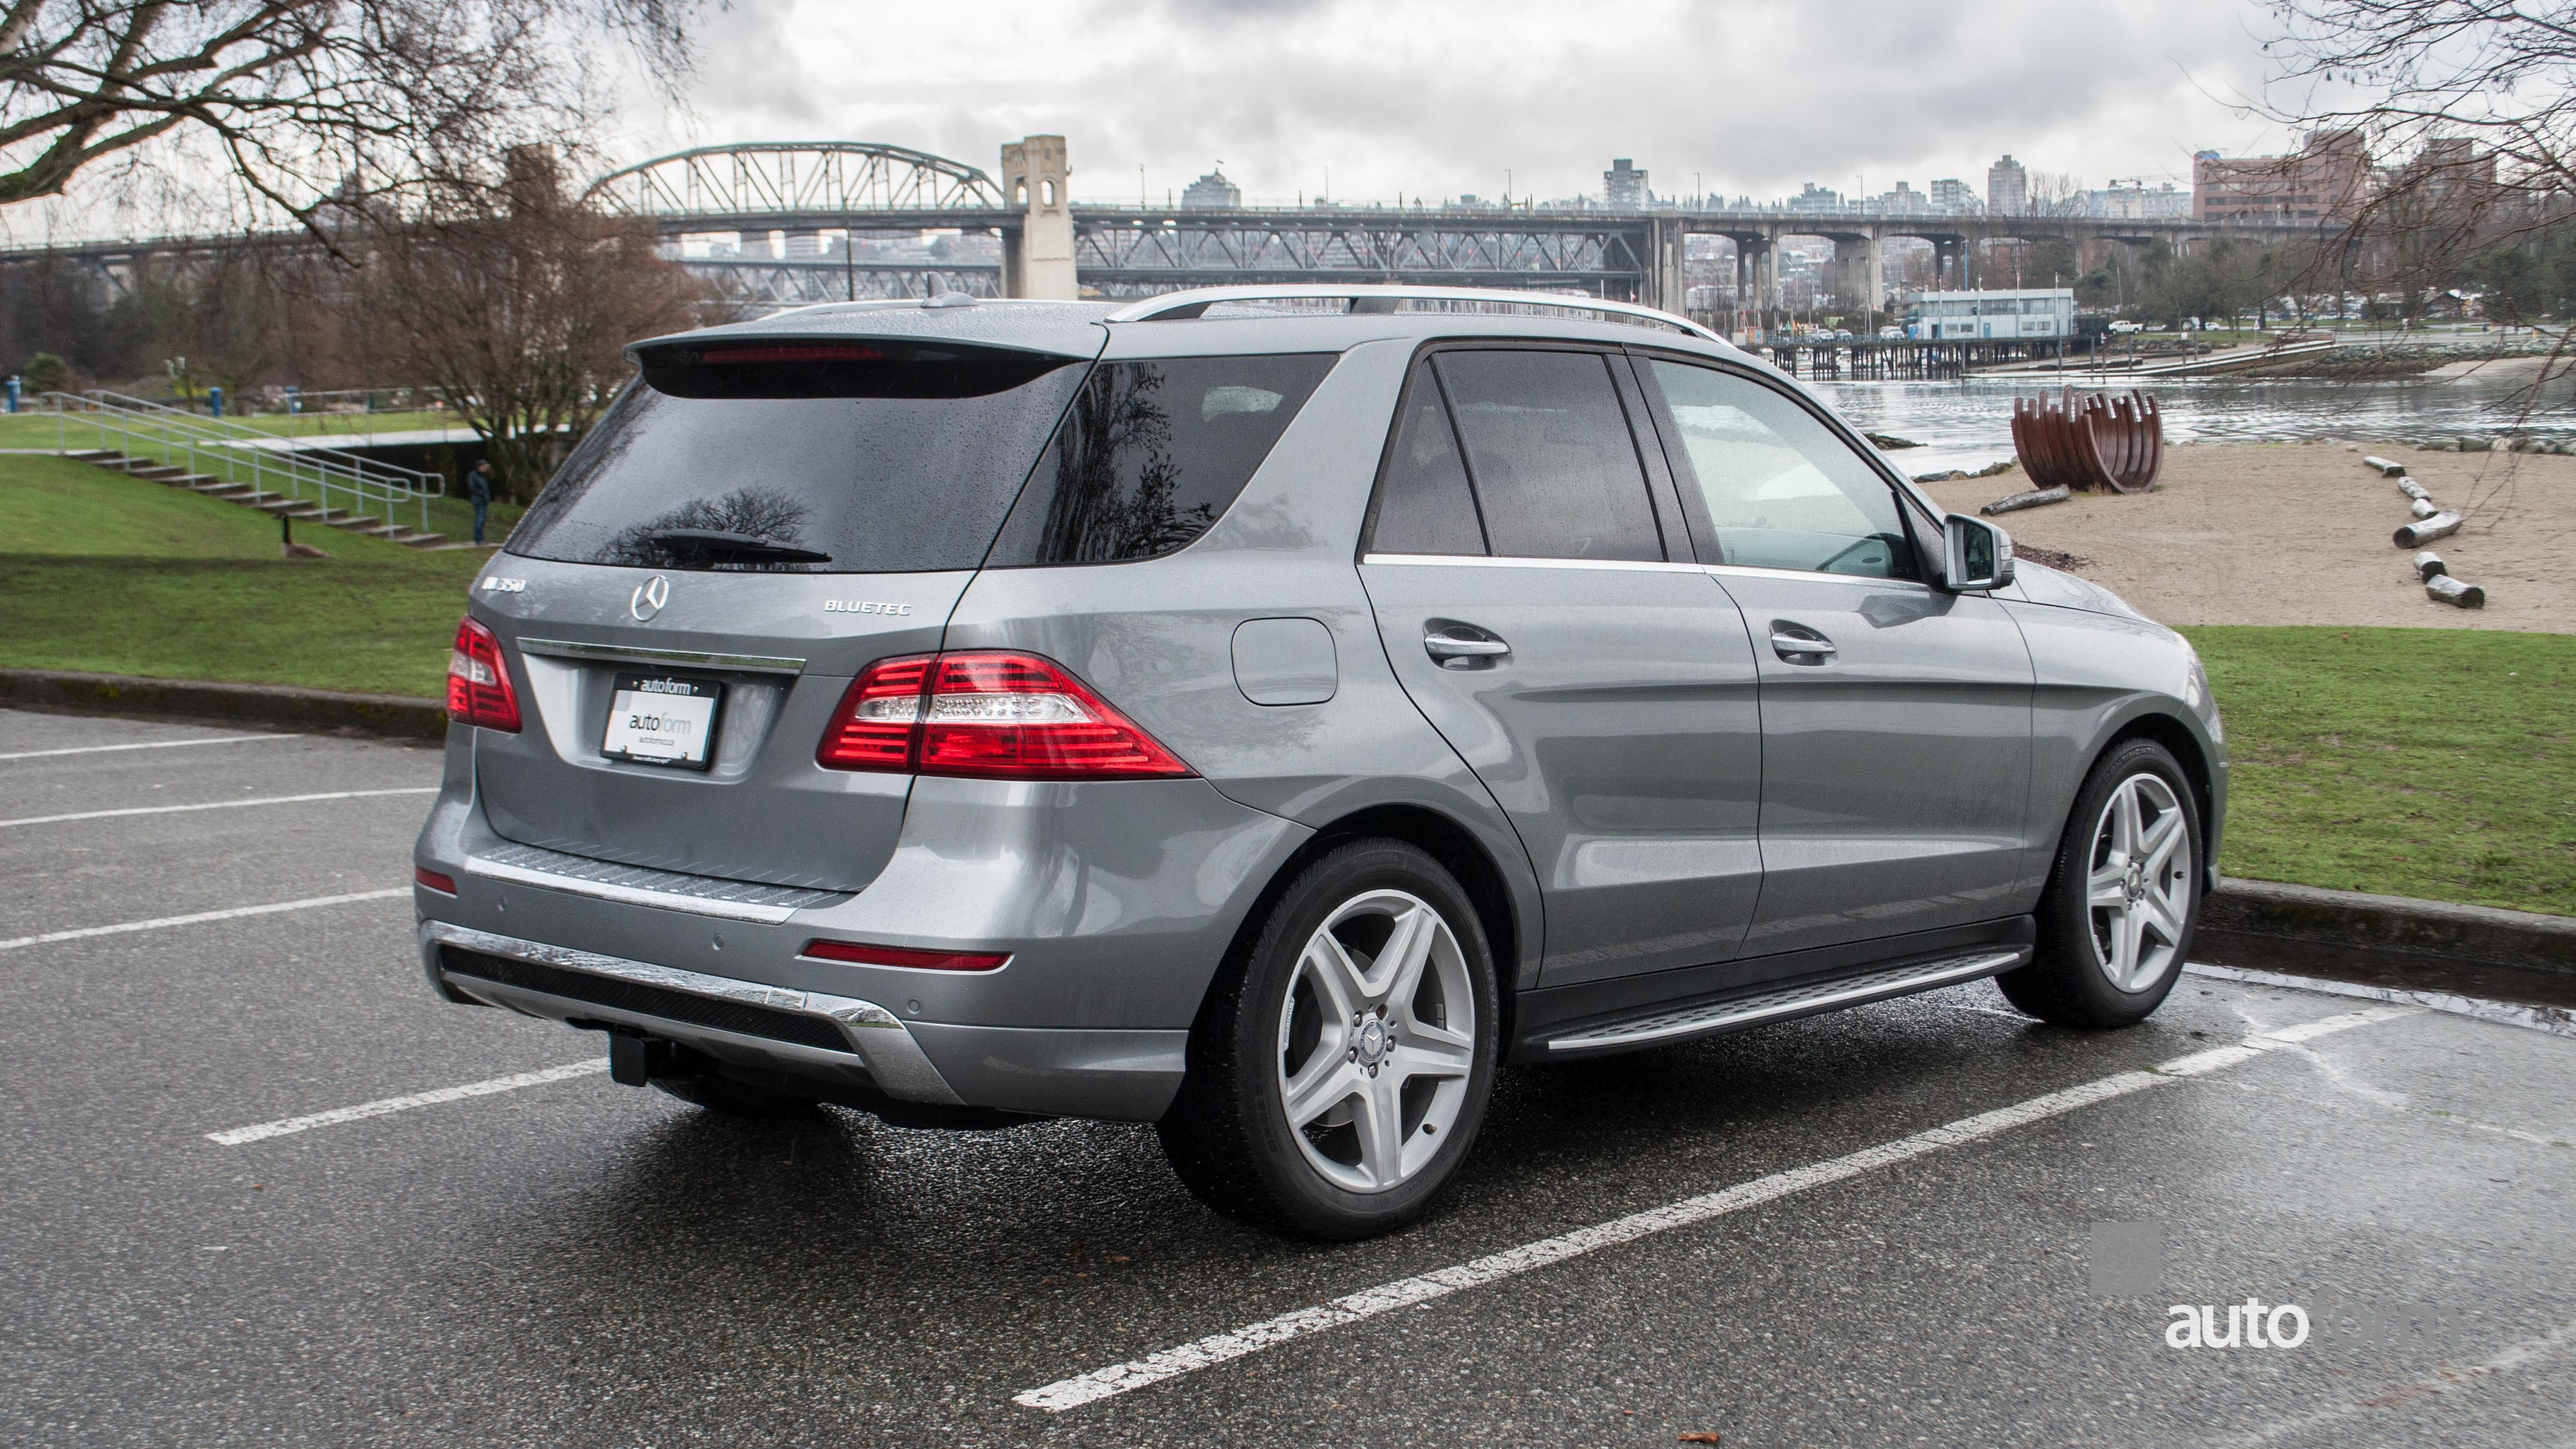 2015 mercedes benz ml350 bluetec 4matic autoform. Black Bedroom Furniture Sets. Home Design Ideas